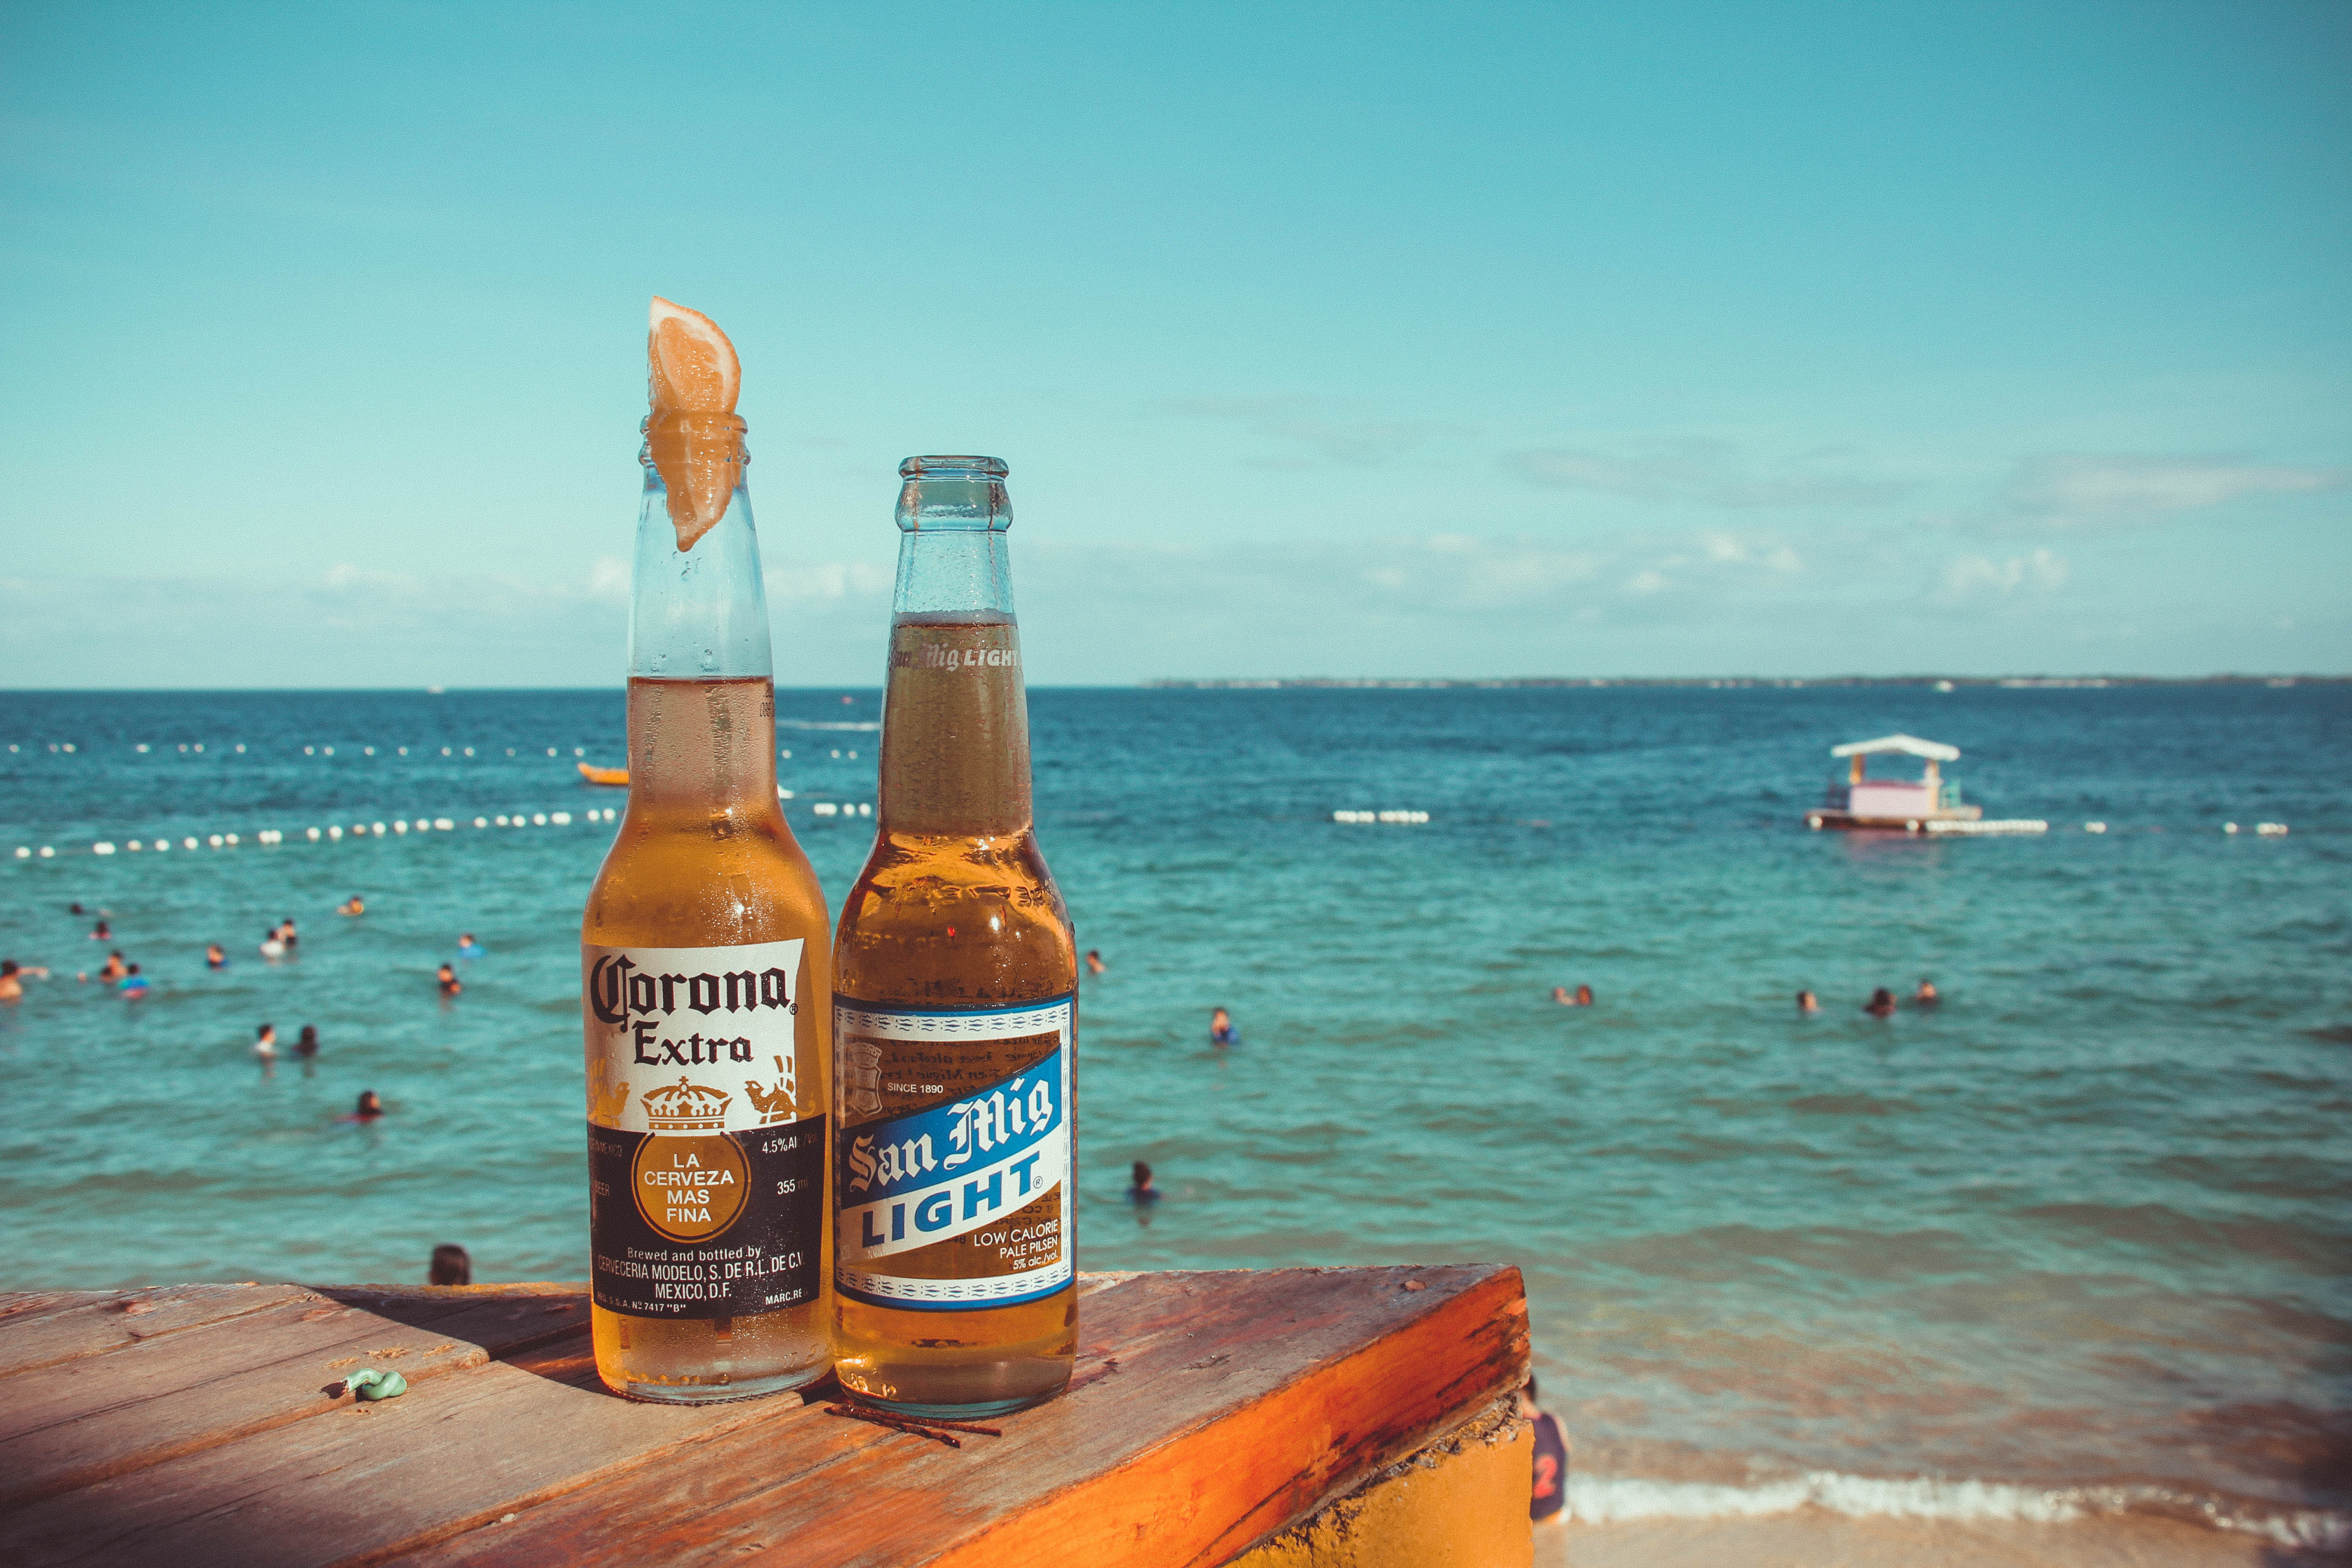 two-corona-extra-and-san-mig-light-beers-on-top-of-brown-767239.jpg